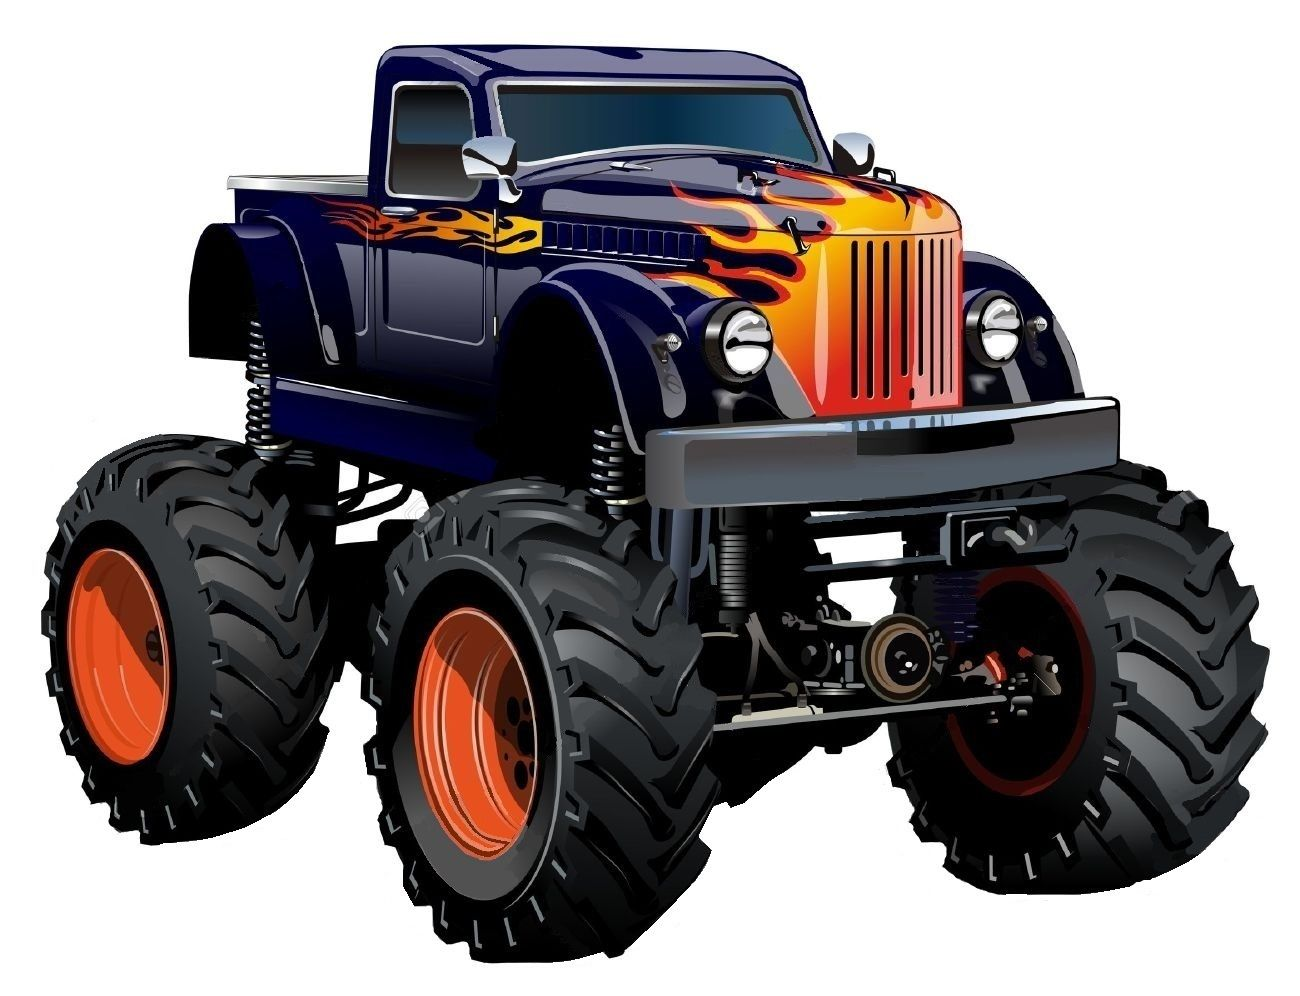 Pin By Joseph Opahle On Car Art Fun With Images Monster Trucks